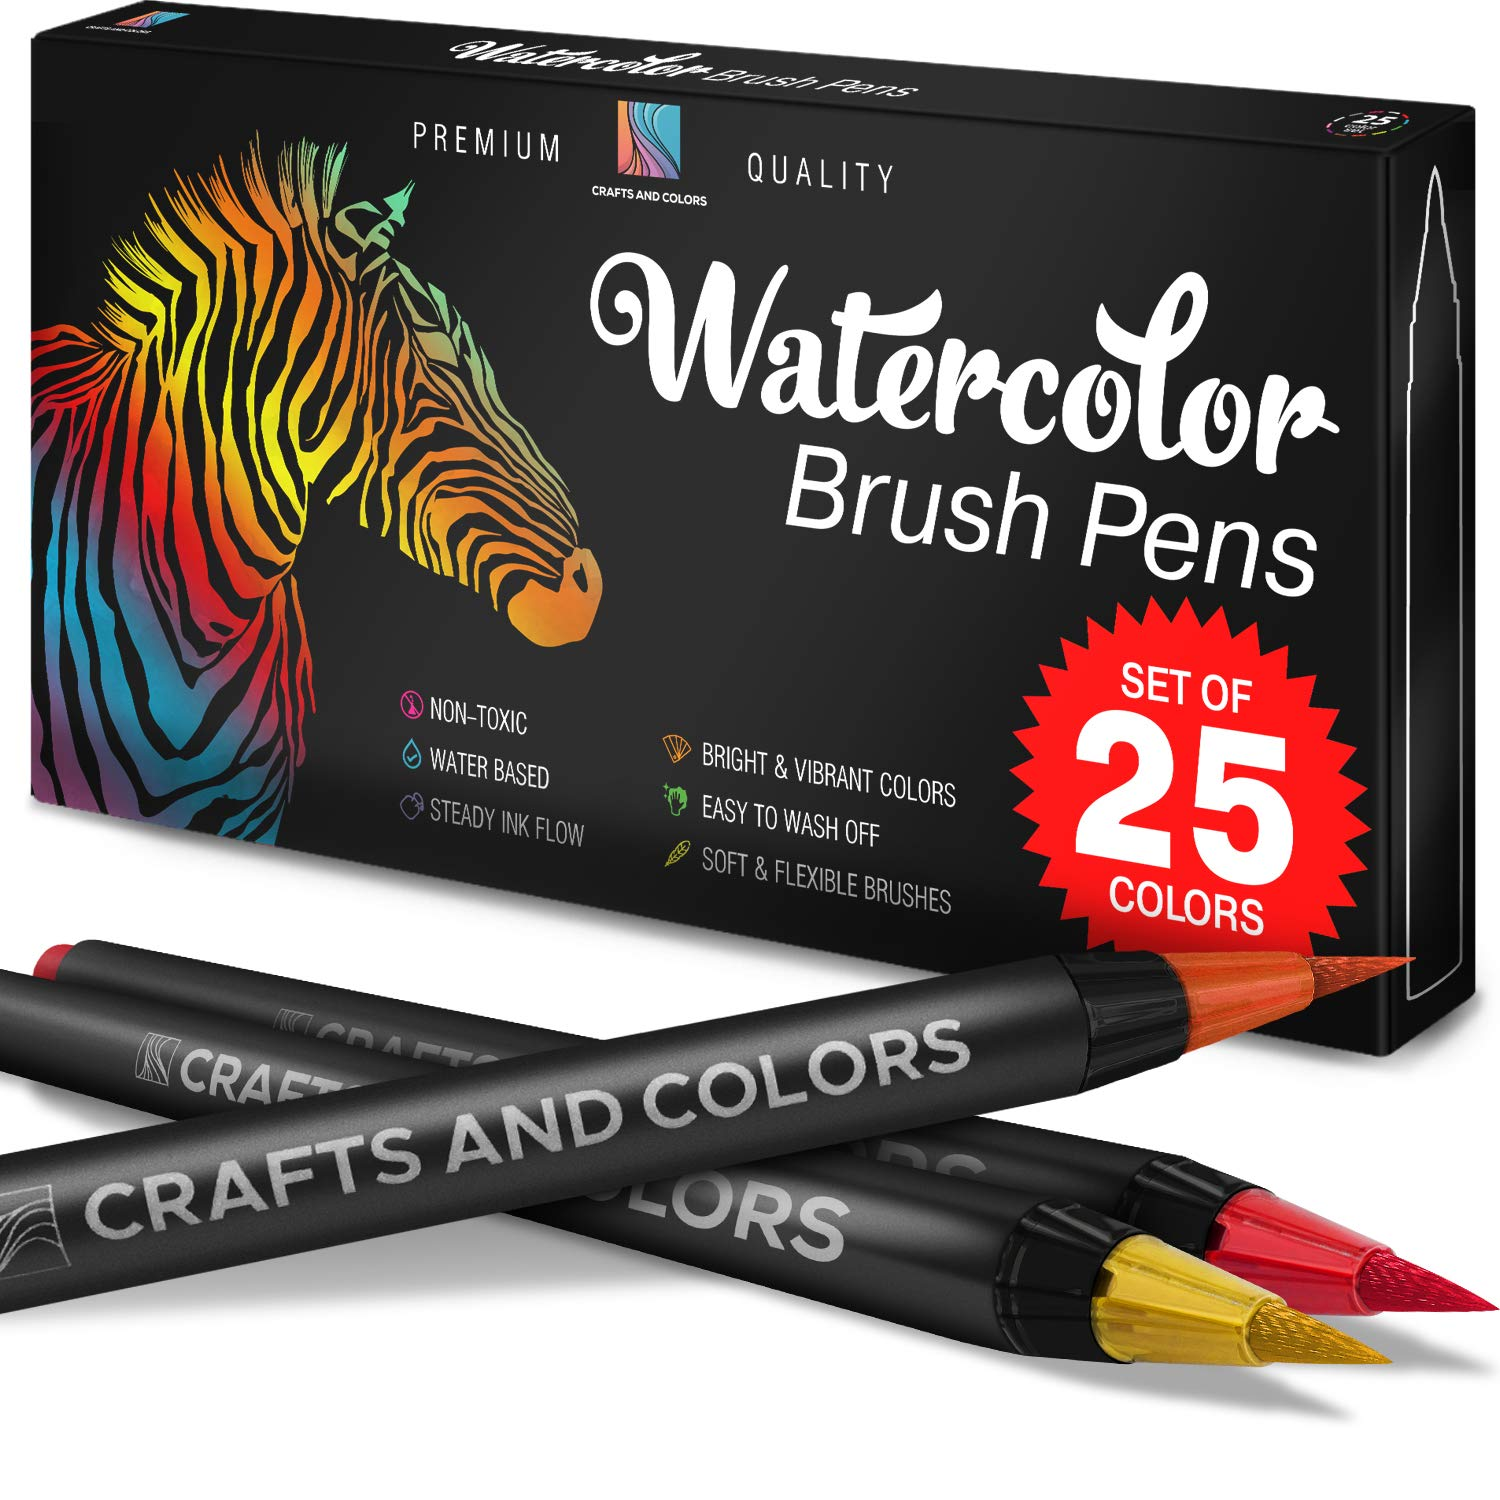 Artist Watercolor Brush Pens Set of 26 - Vibrant Markers with Bonus 1 Water Brush Pen - 25 Colors Flexible Nylon Tips - Paper Pad & Carry Case - Non-Toxic Safe & Fun Watercolors in Gift Ready Package by CRAFTS & COLORS